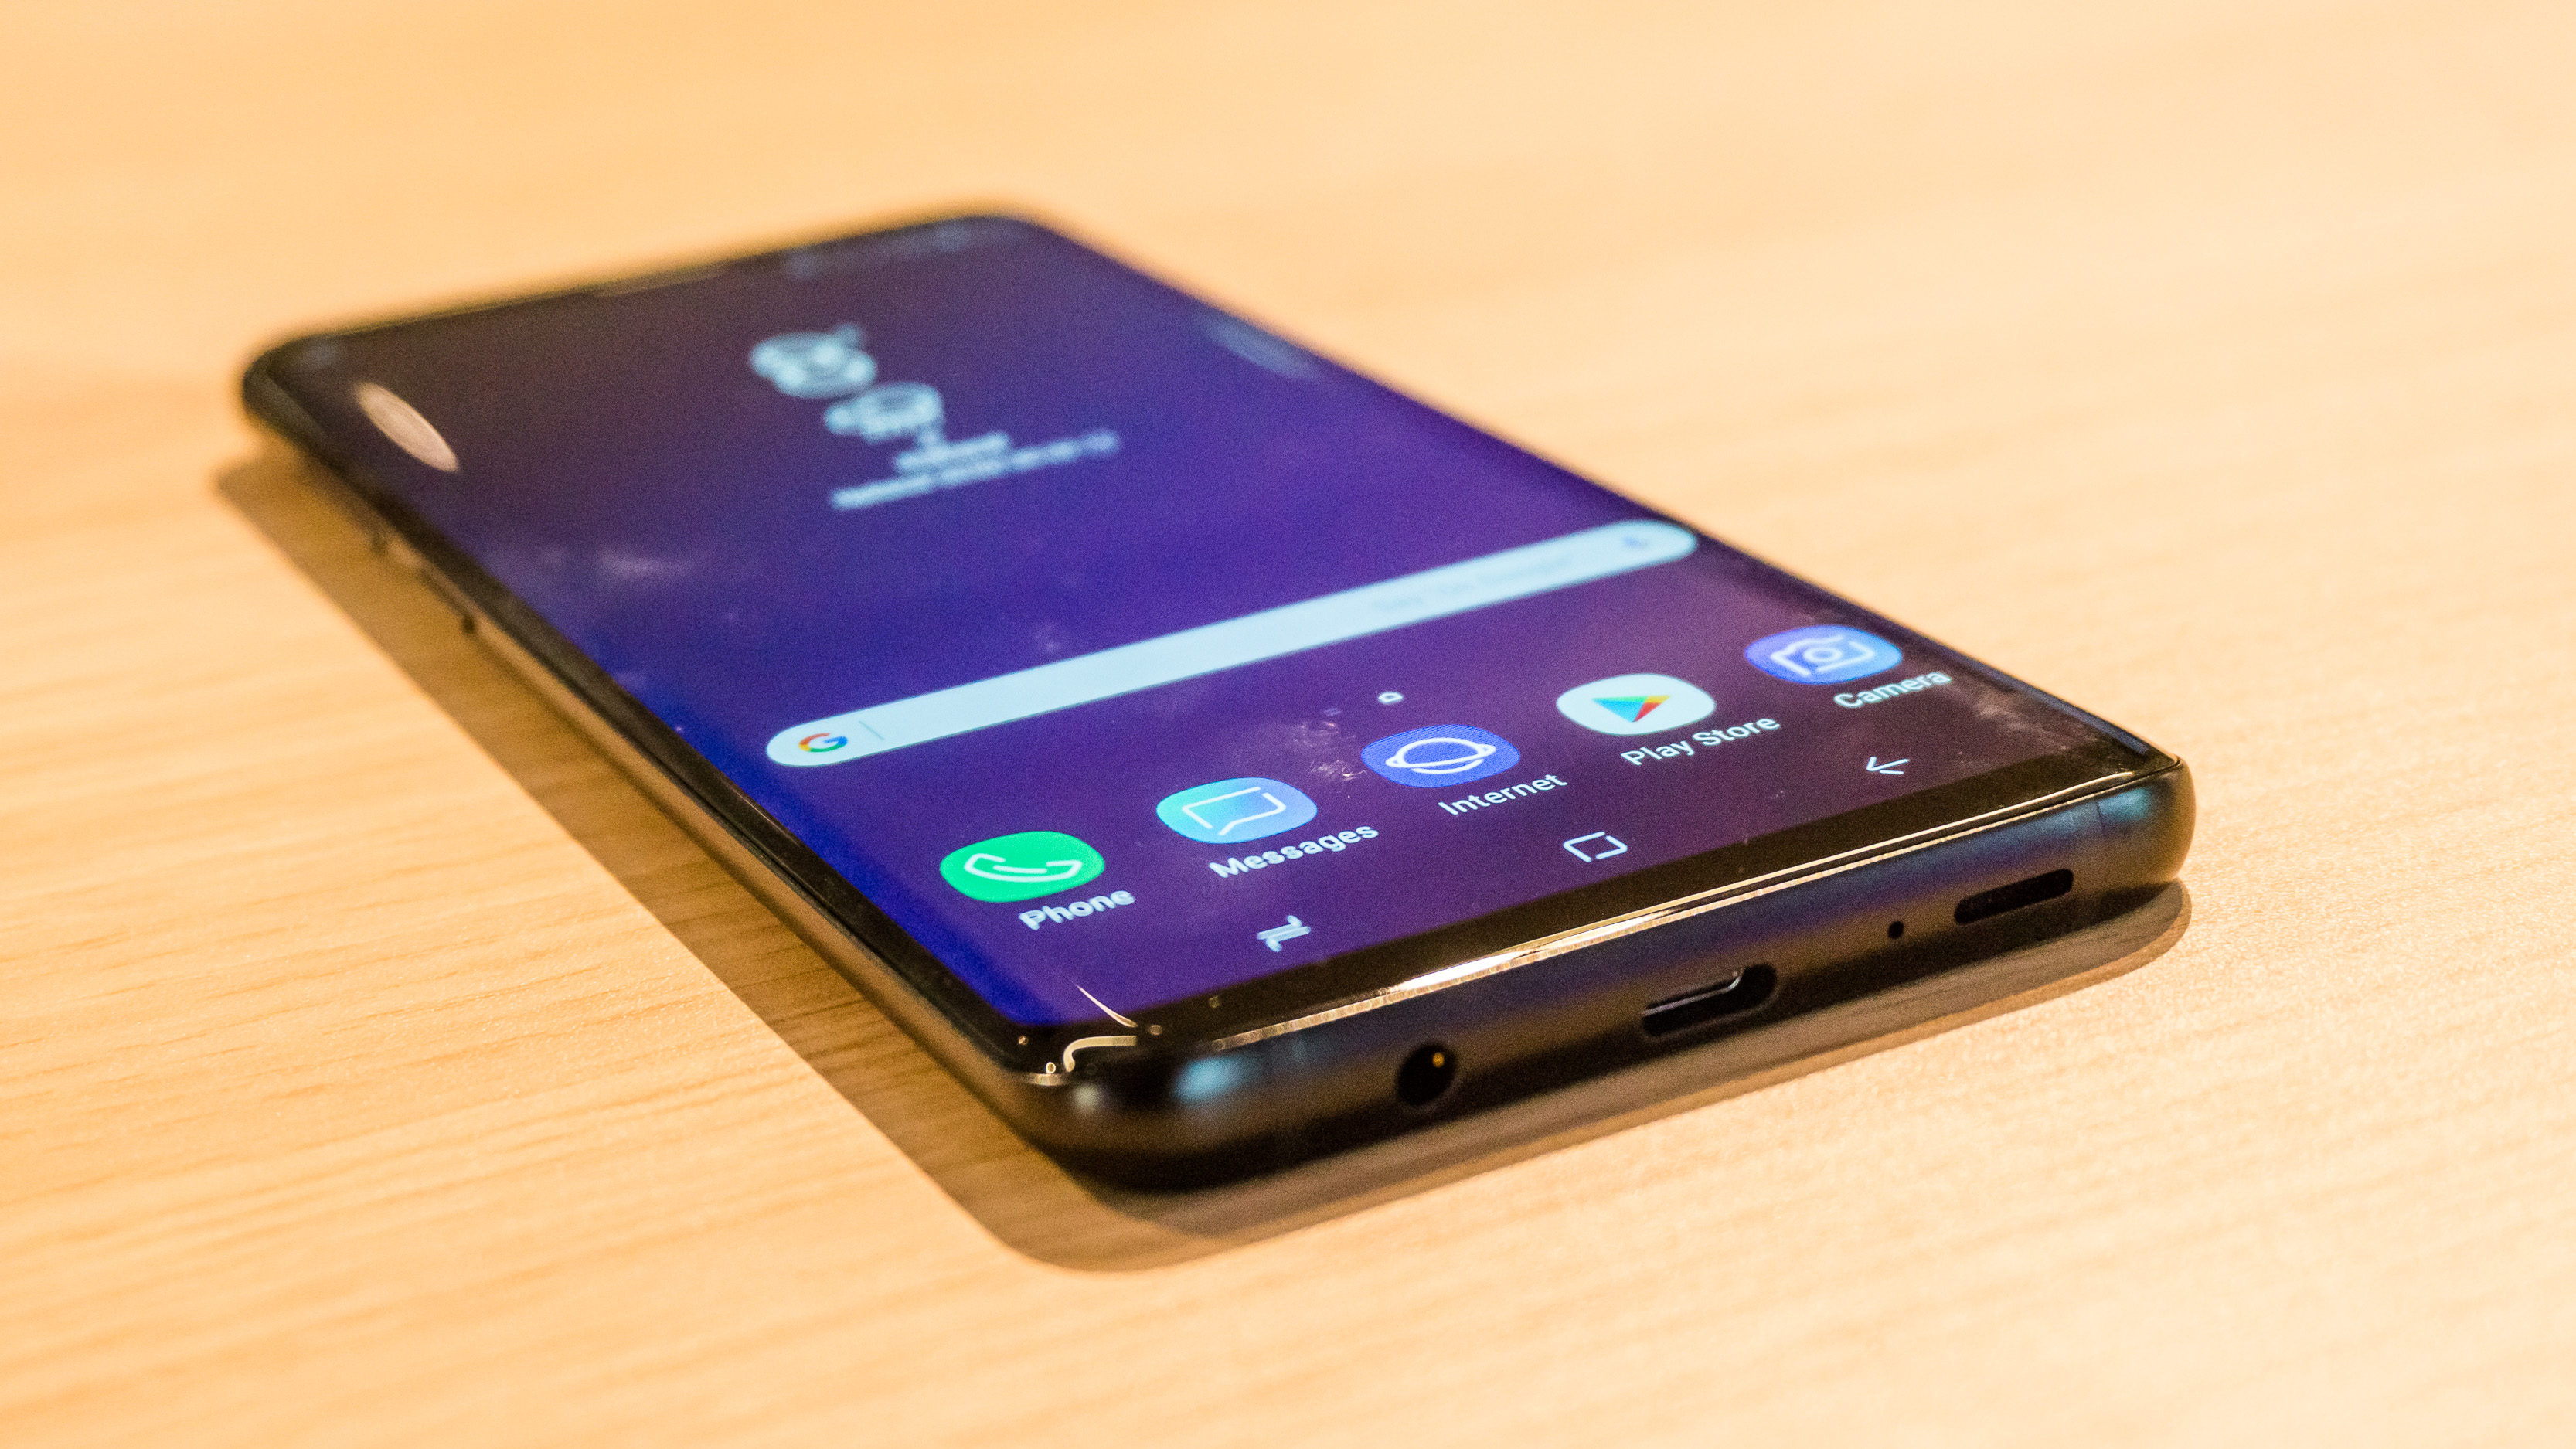 Smartphone Kabellos Laden Samsung Galaxy S9 Plus Wireless Charging Alle Infos Zum Aufladen